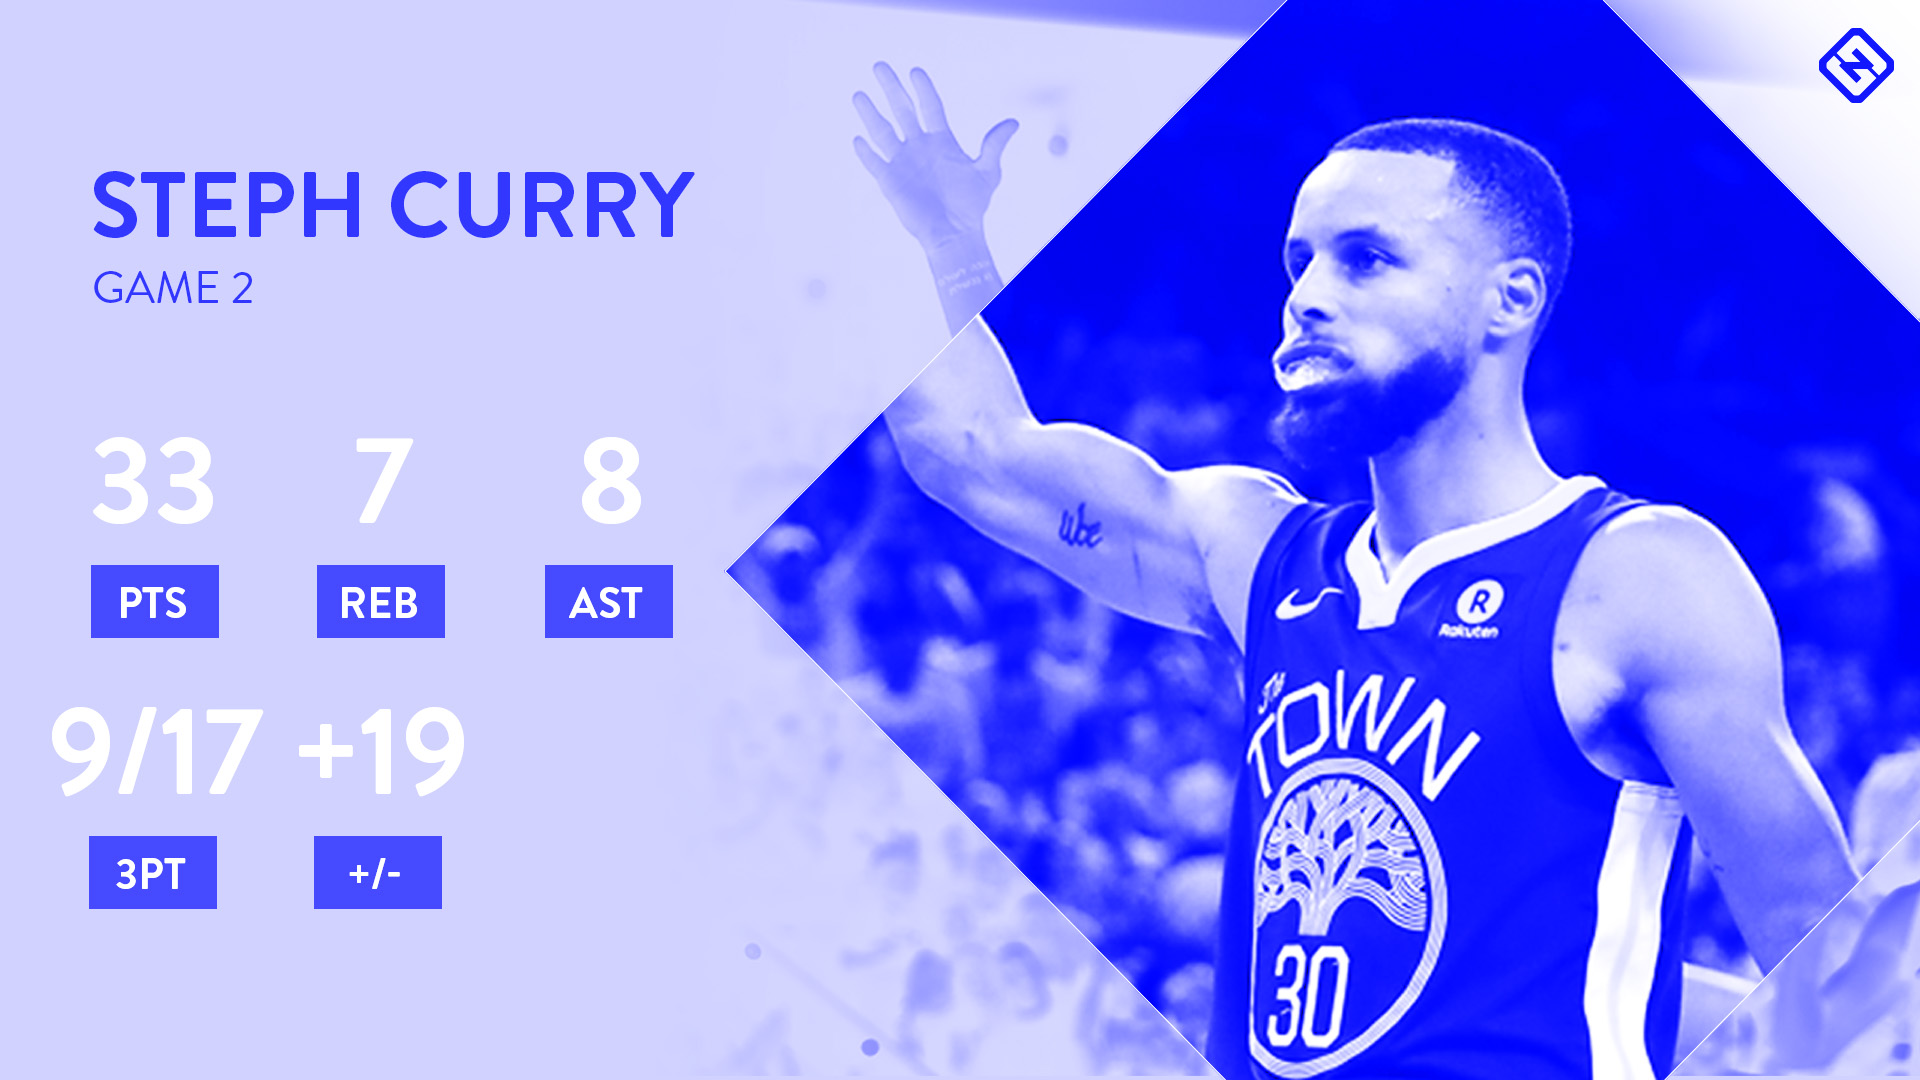 stephen-curry-game-2-stats-060318.jpg